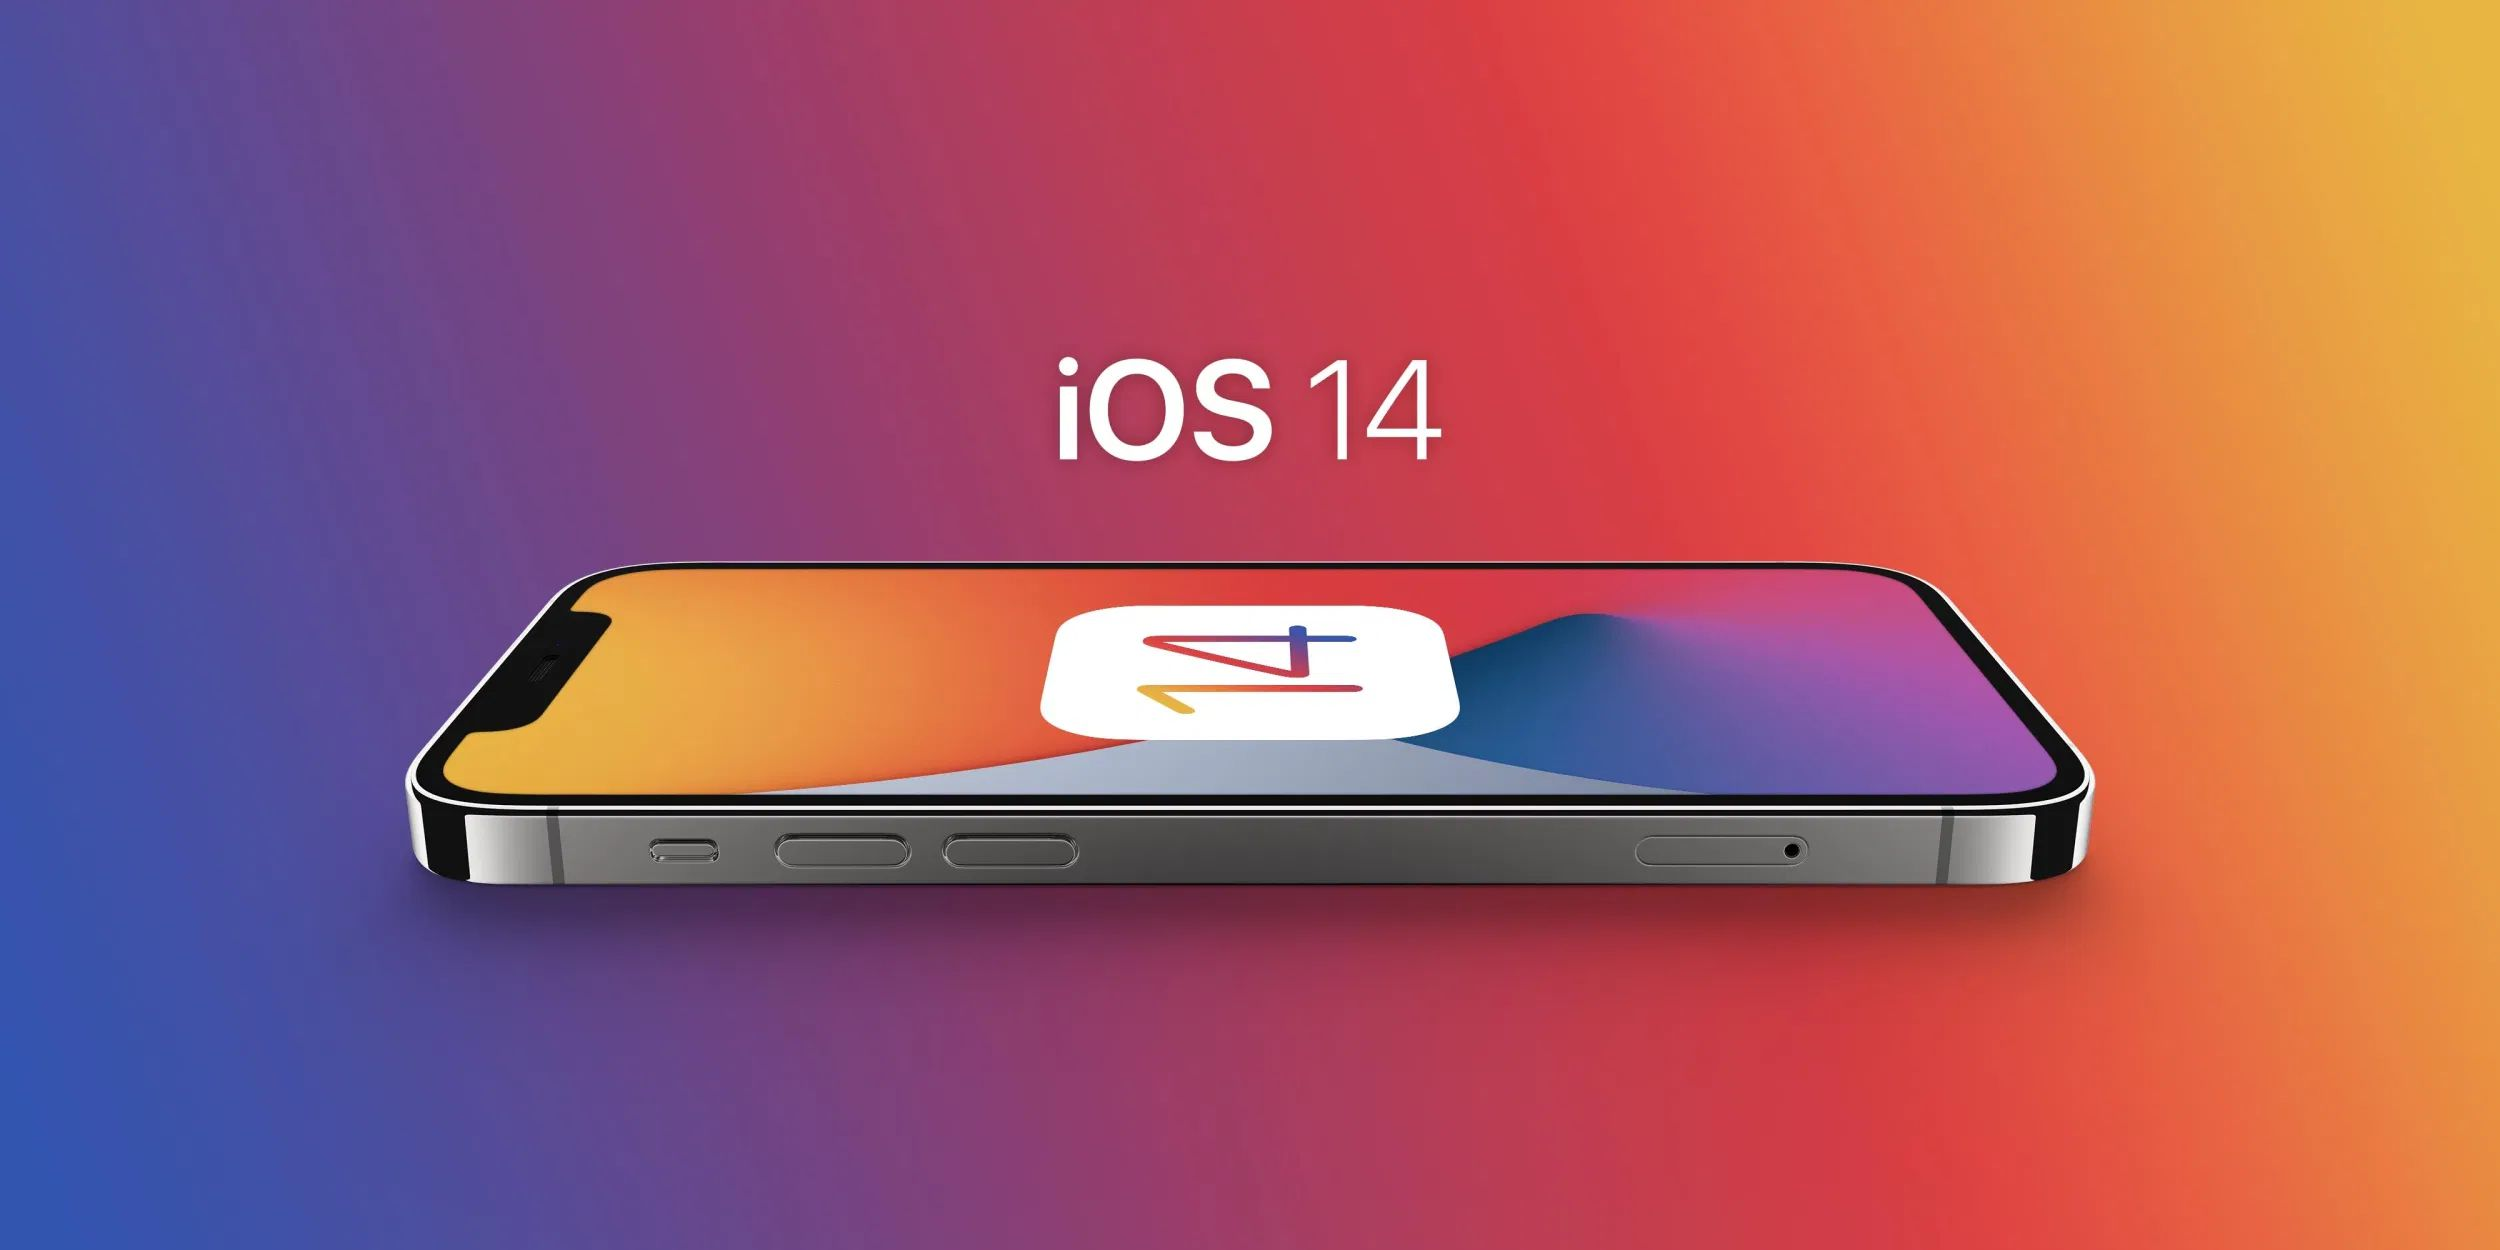 Apple Ceases iOS 14.5.1 Code Signing Following Release of iOS 14.6